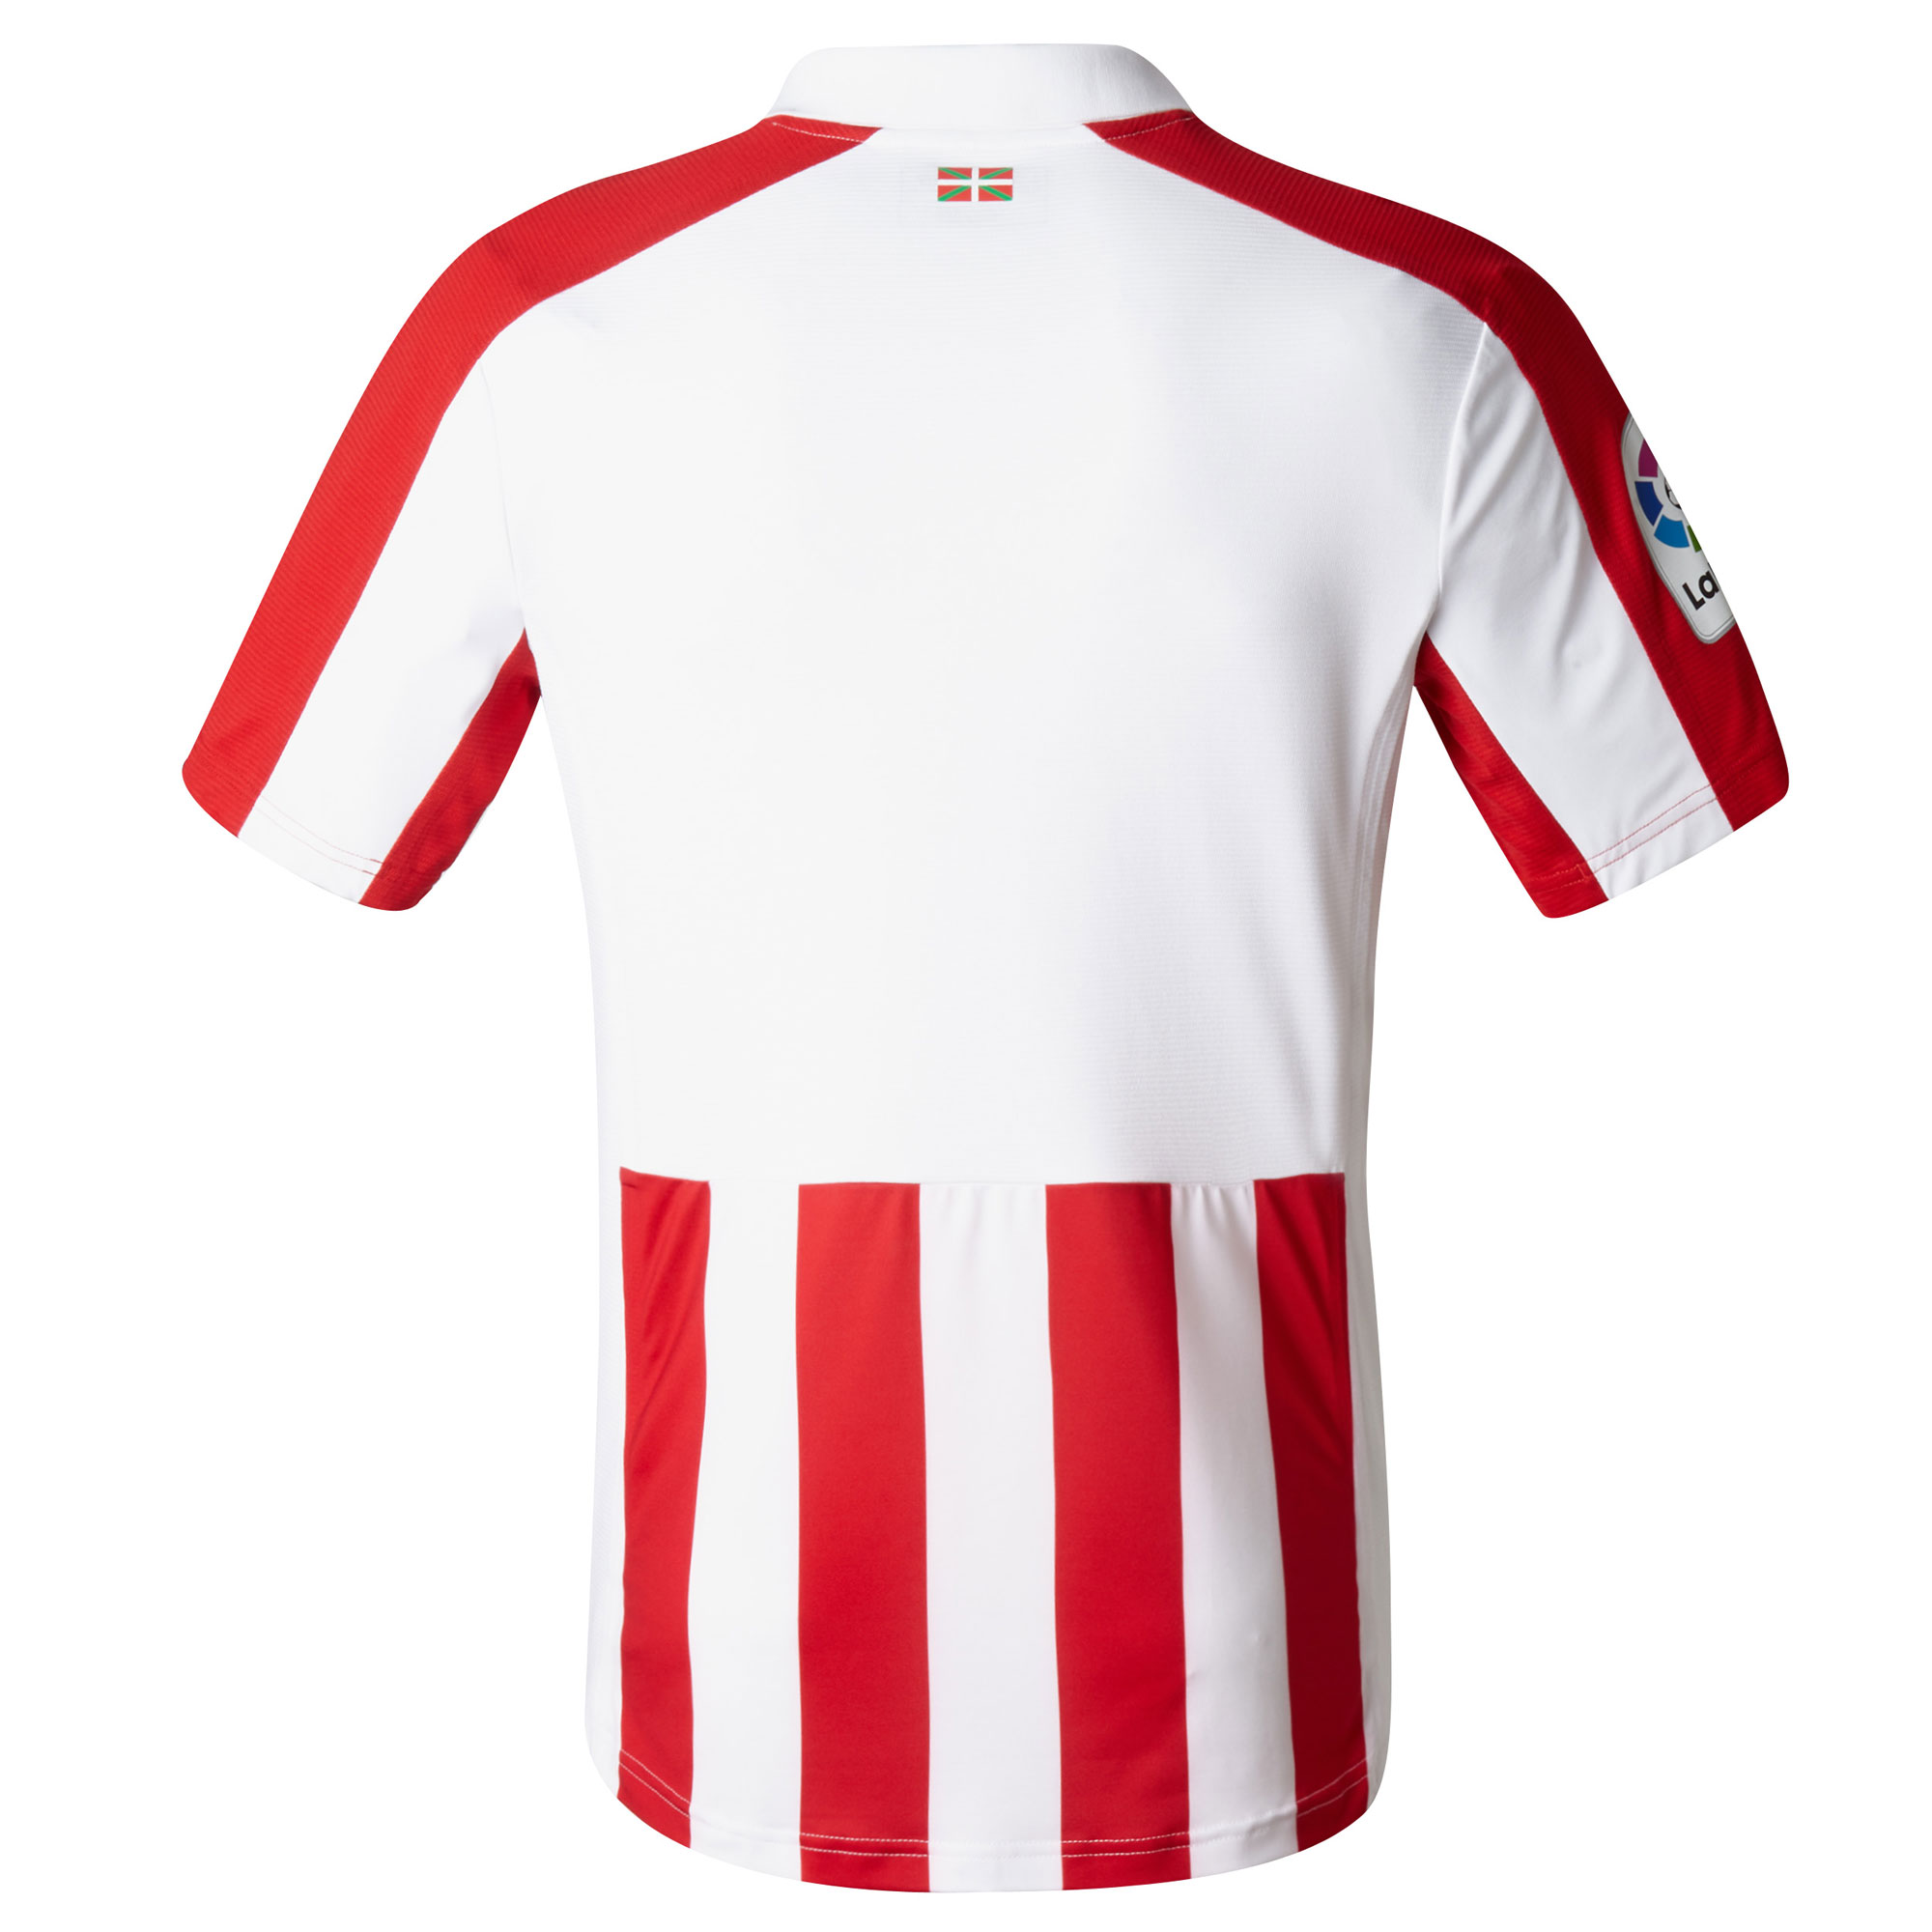 018a364e6a0 ... Click to enlarge image athletic bilbao 17 18 home kit b.jpg ...